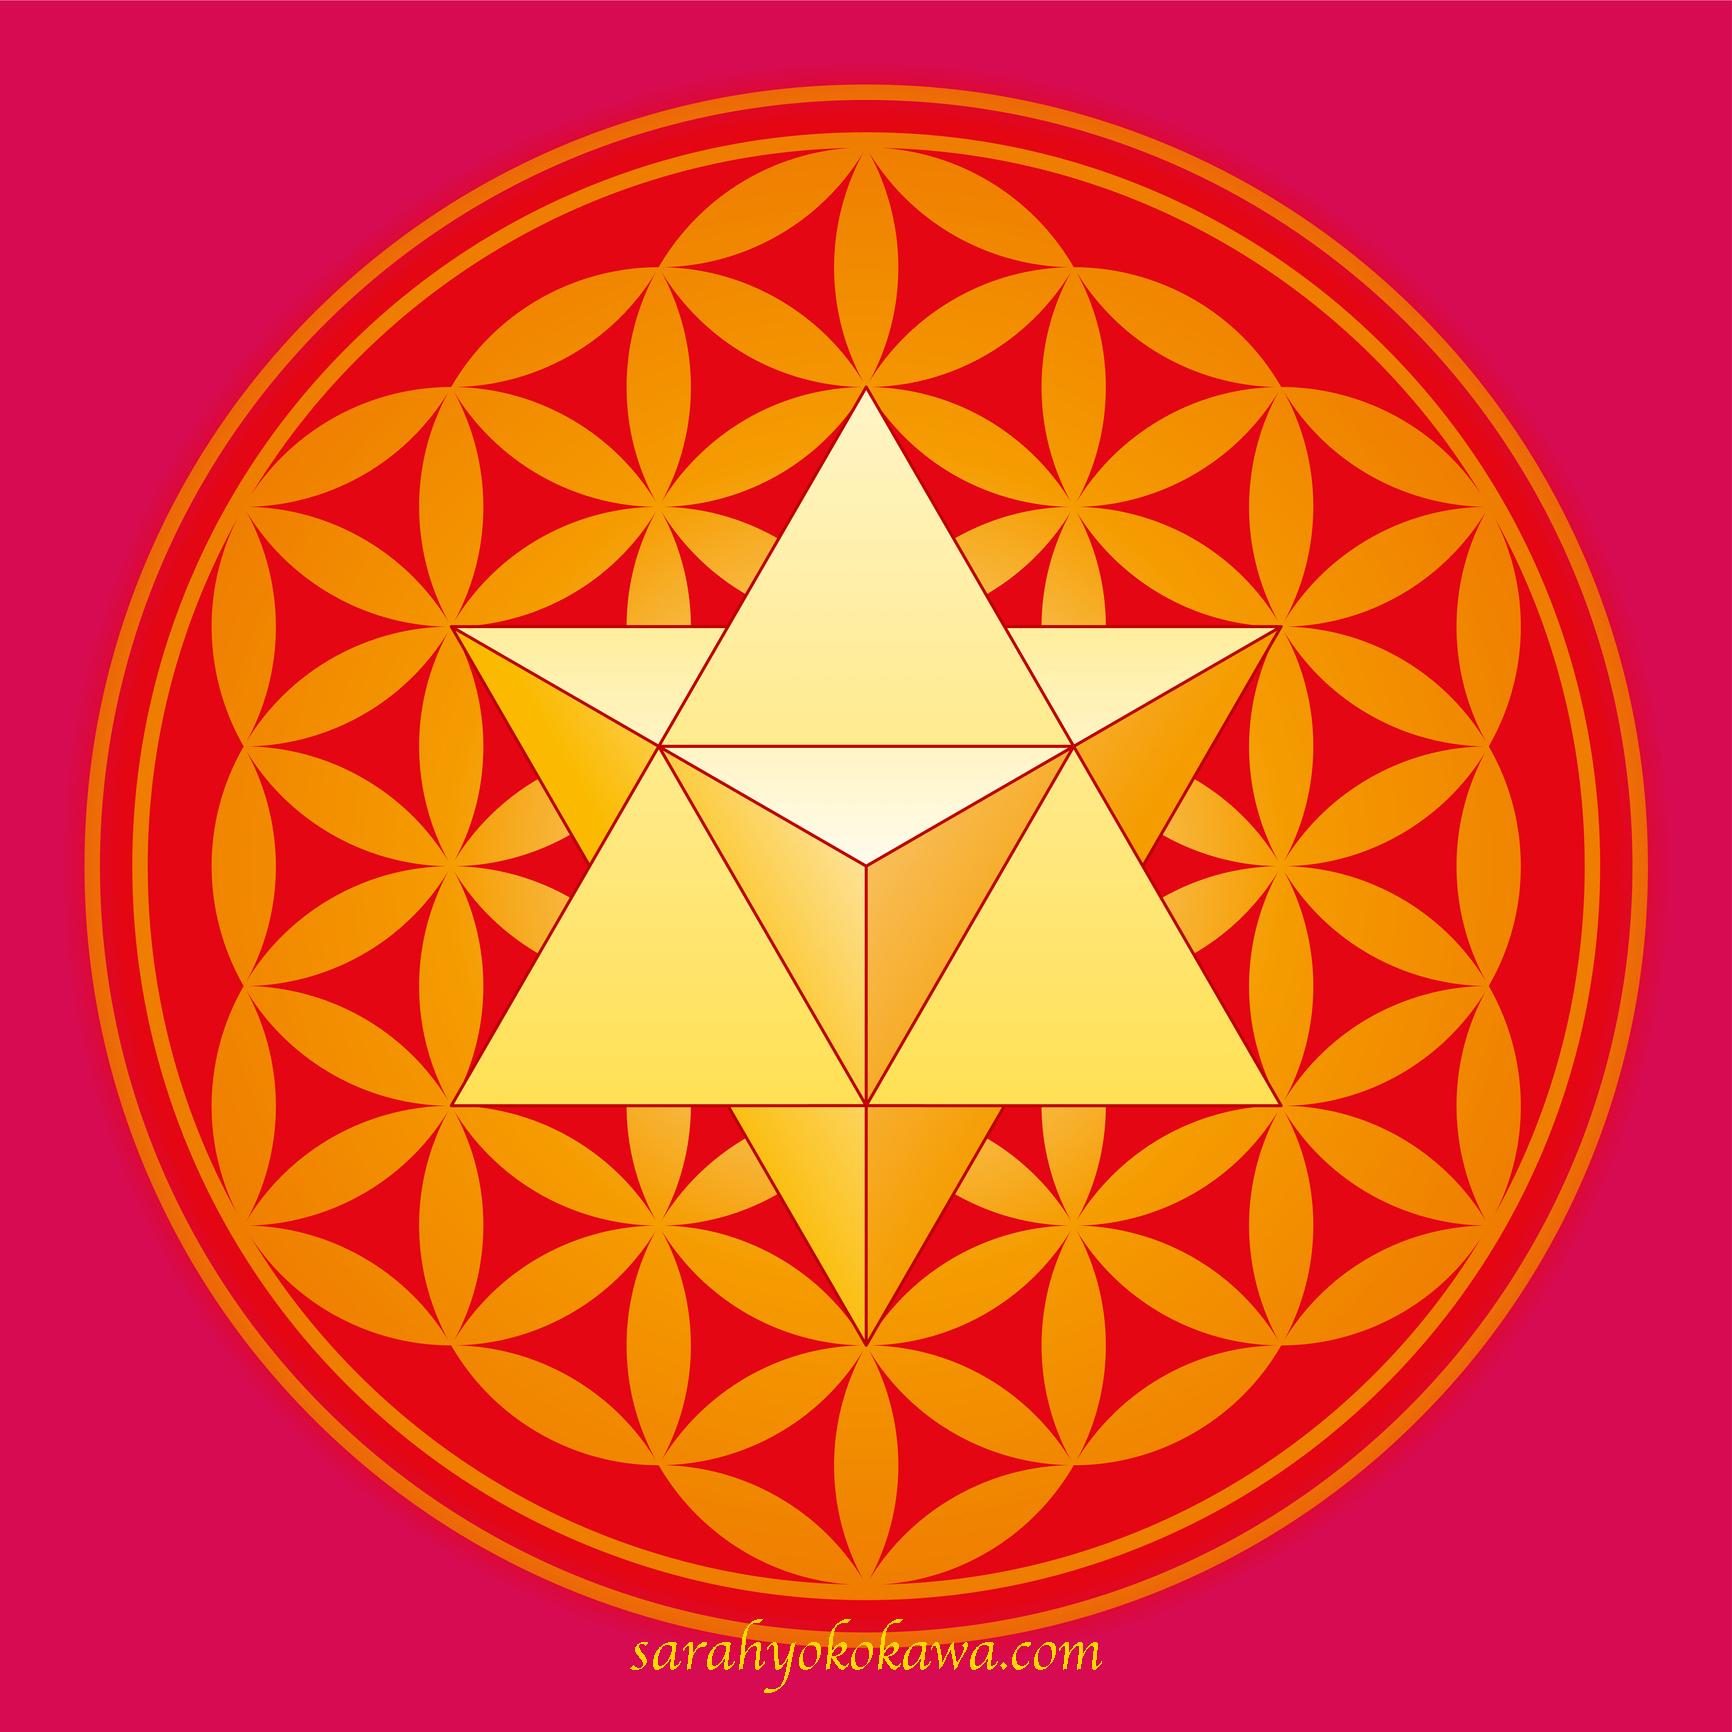 A star tetrahedron also called Merkaba, in the Flower of Life. A double tetrahedron in a geometrical figure, composed of overlapping circles, forming a flower-like pattern. Illustration. Vector.